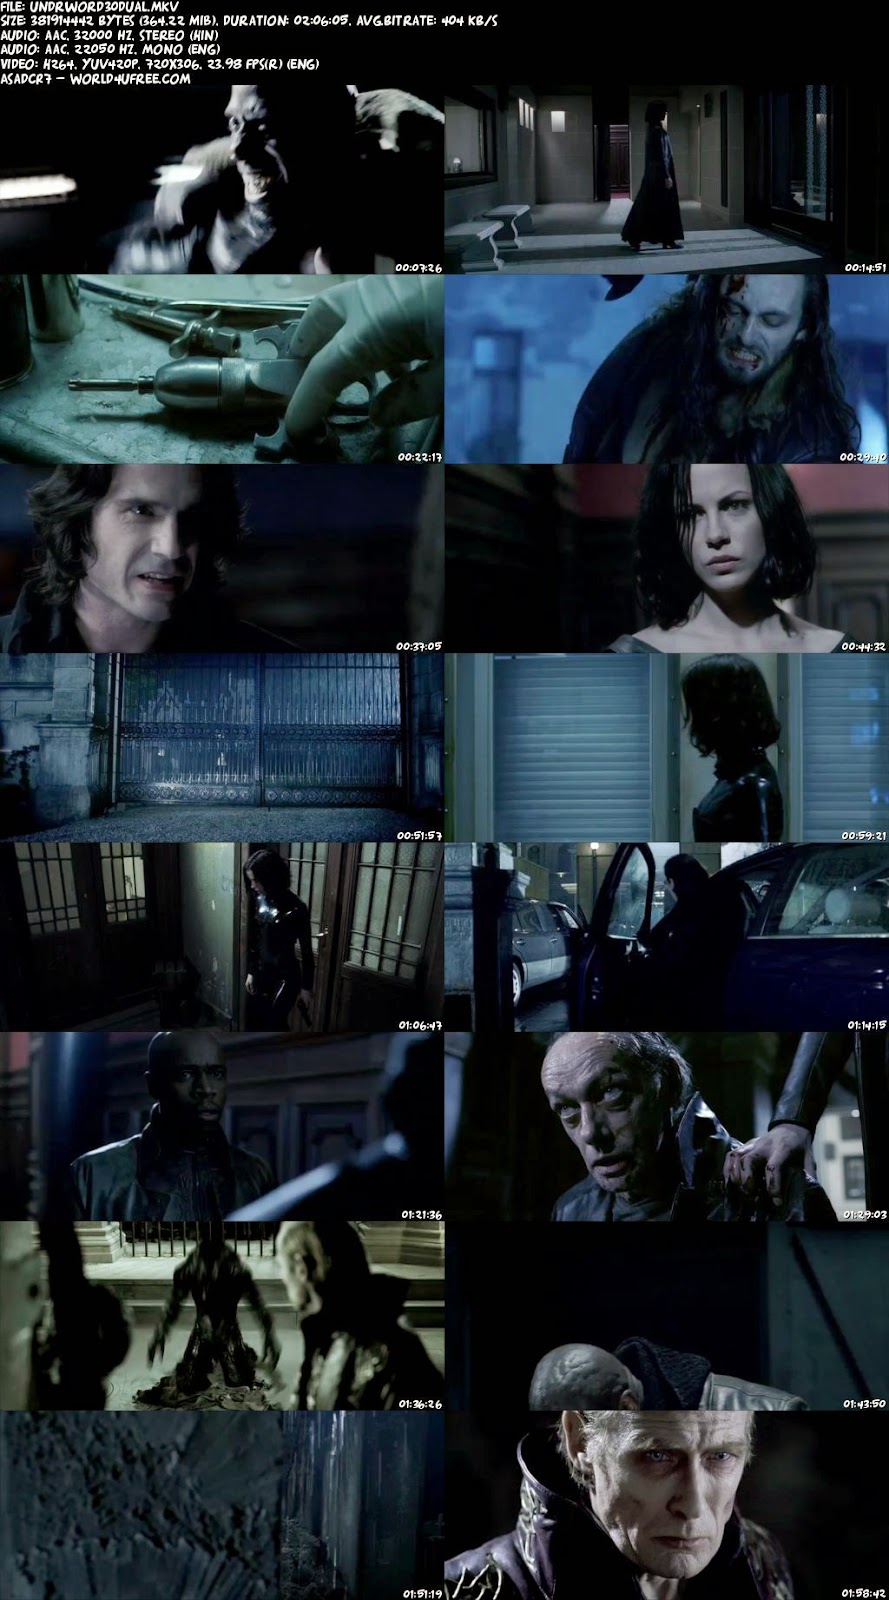 underworld evolution full movie in hindi download 720p khatrimaza